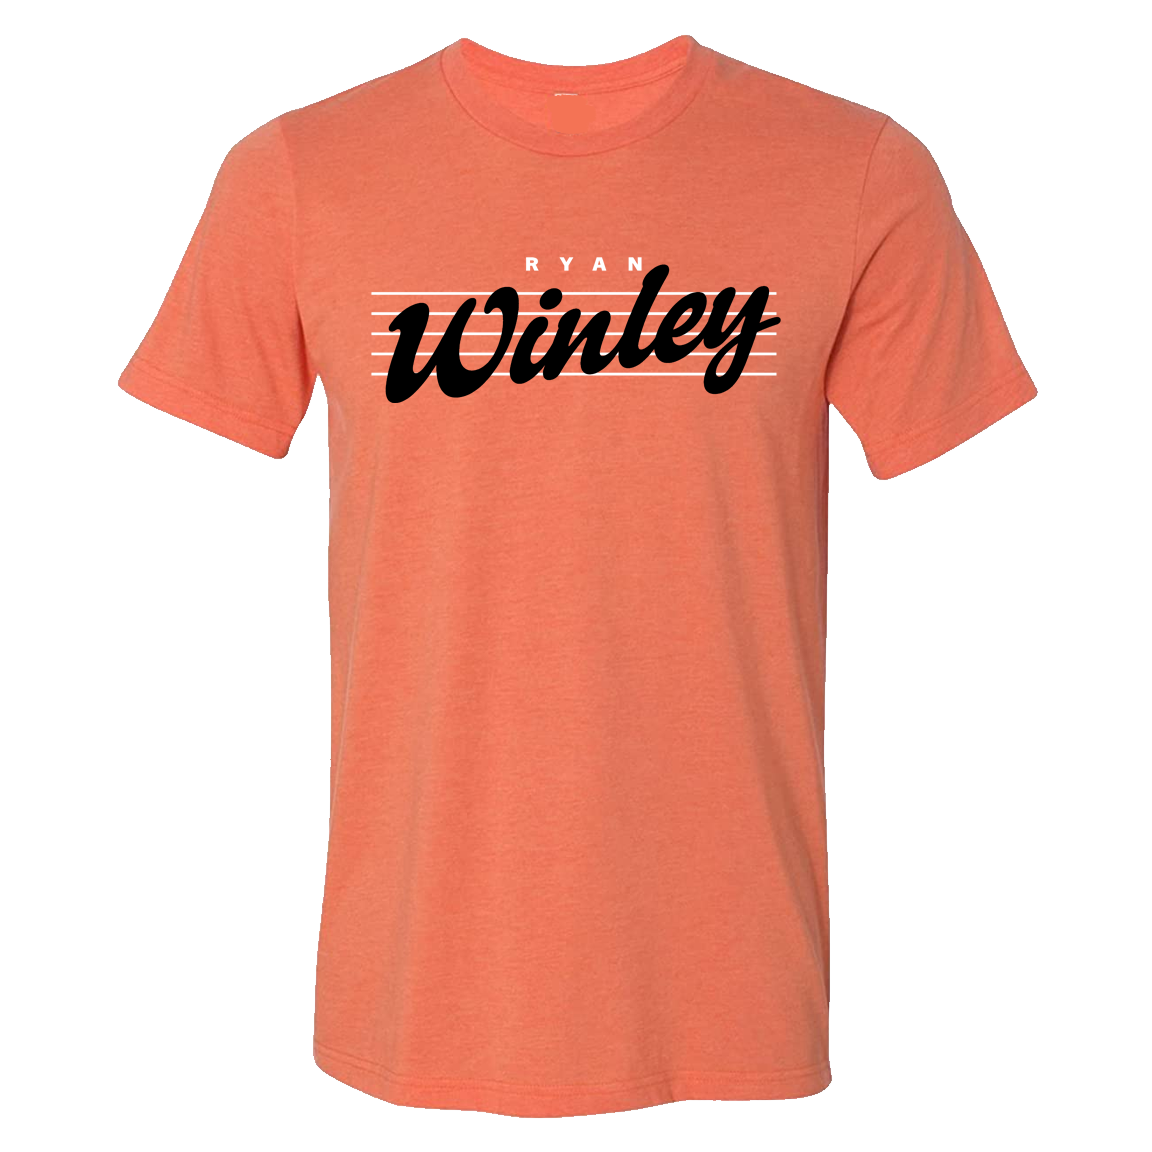 Ryan Winley - Cincy Shirts